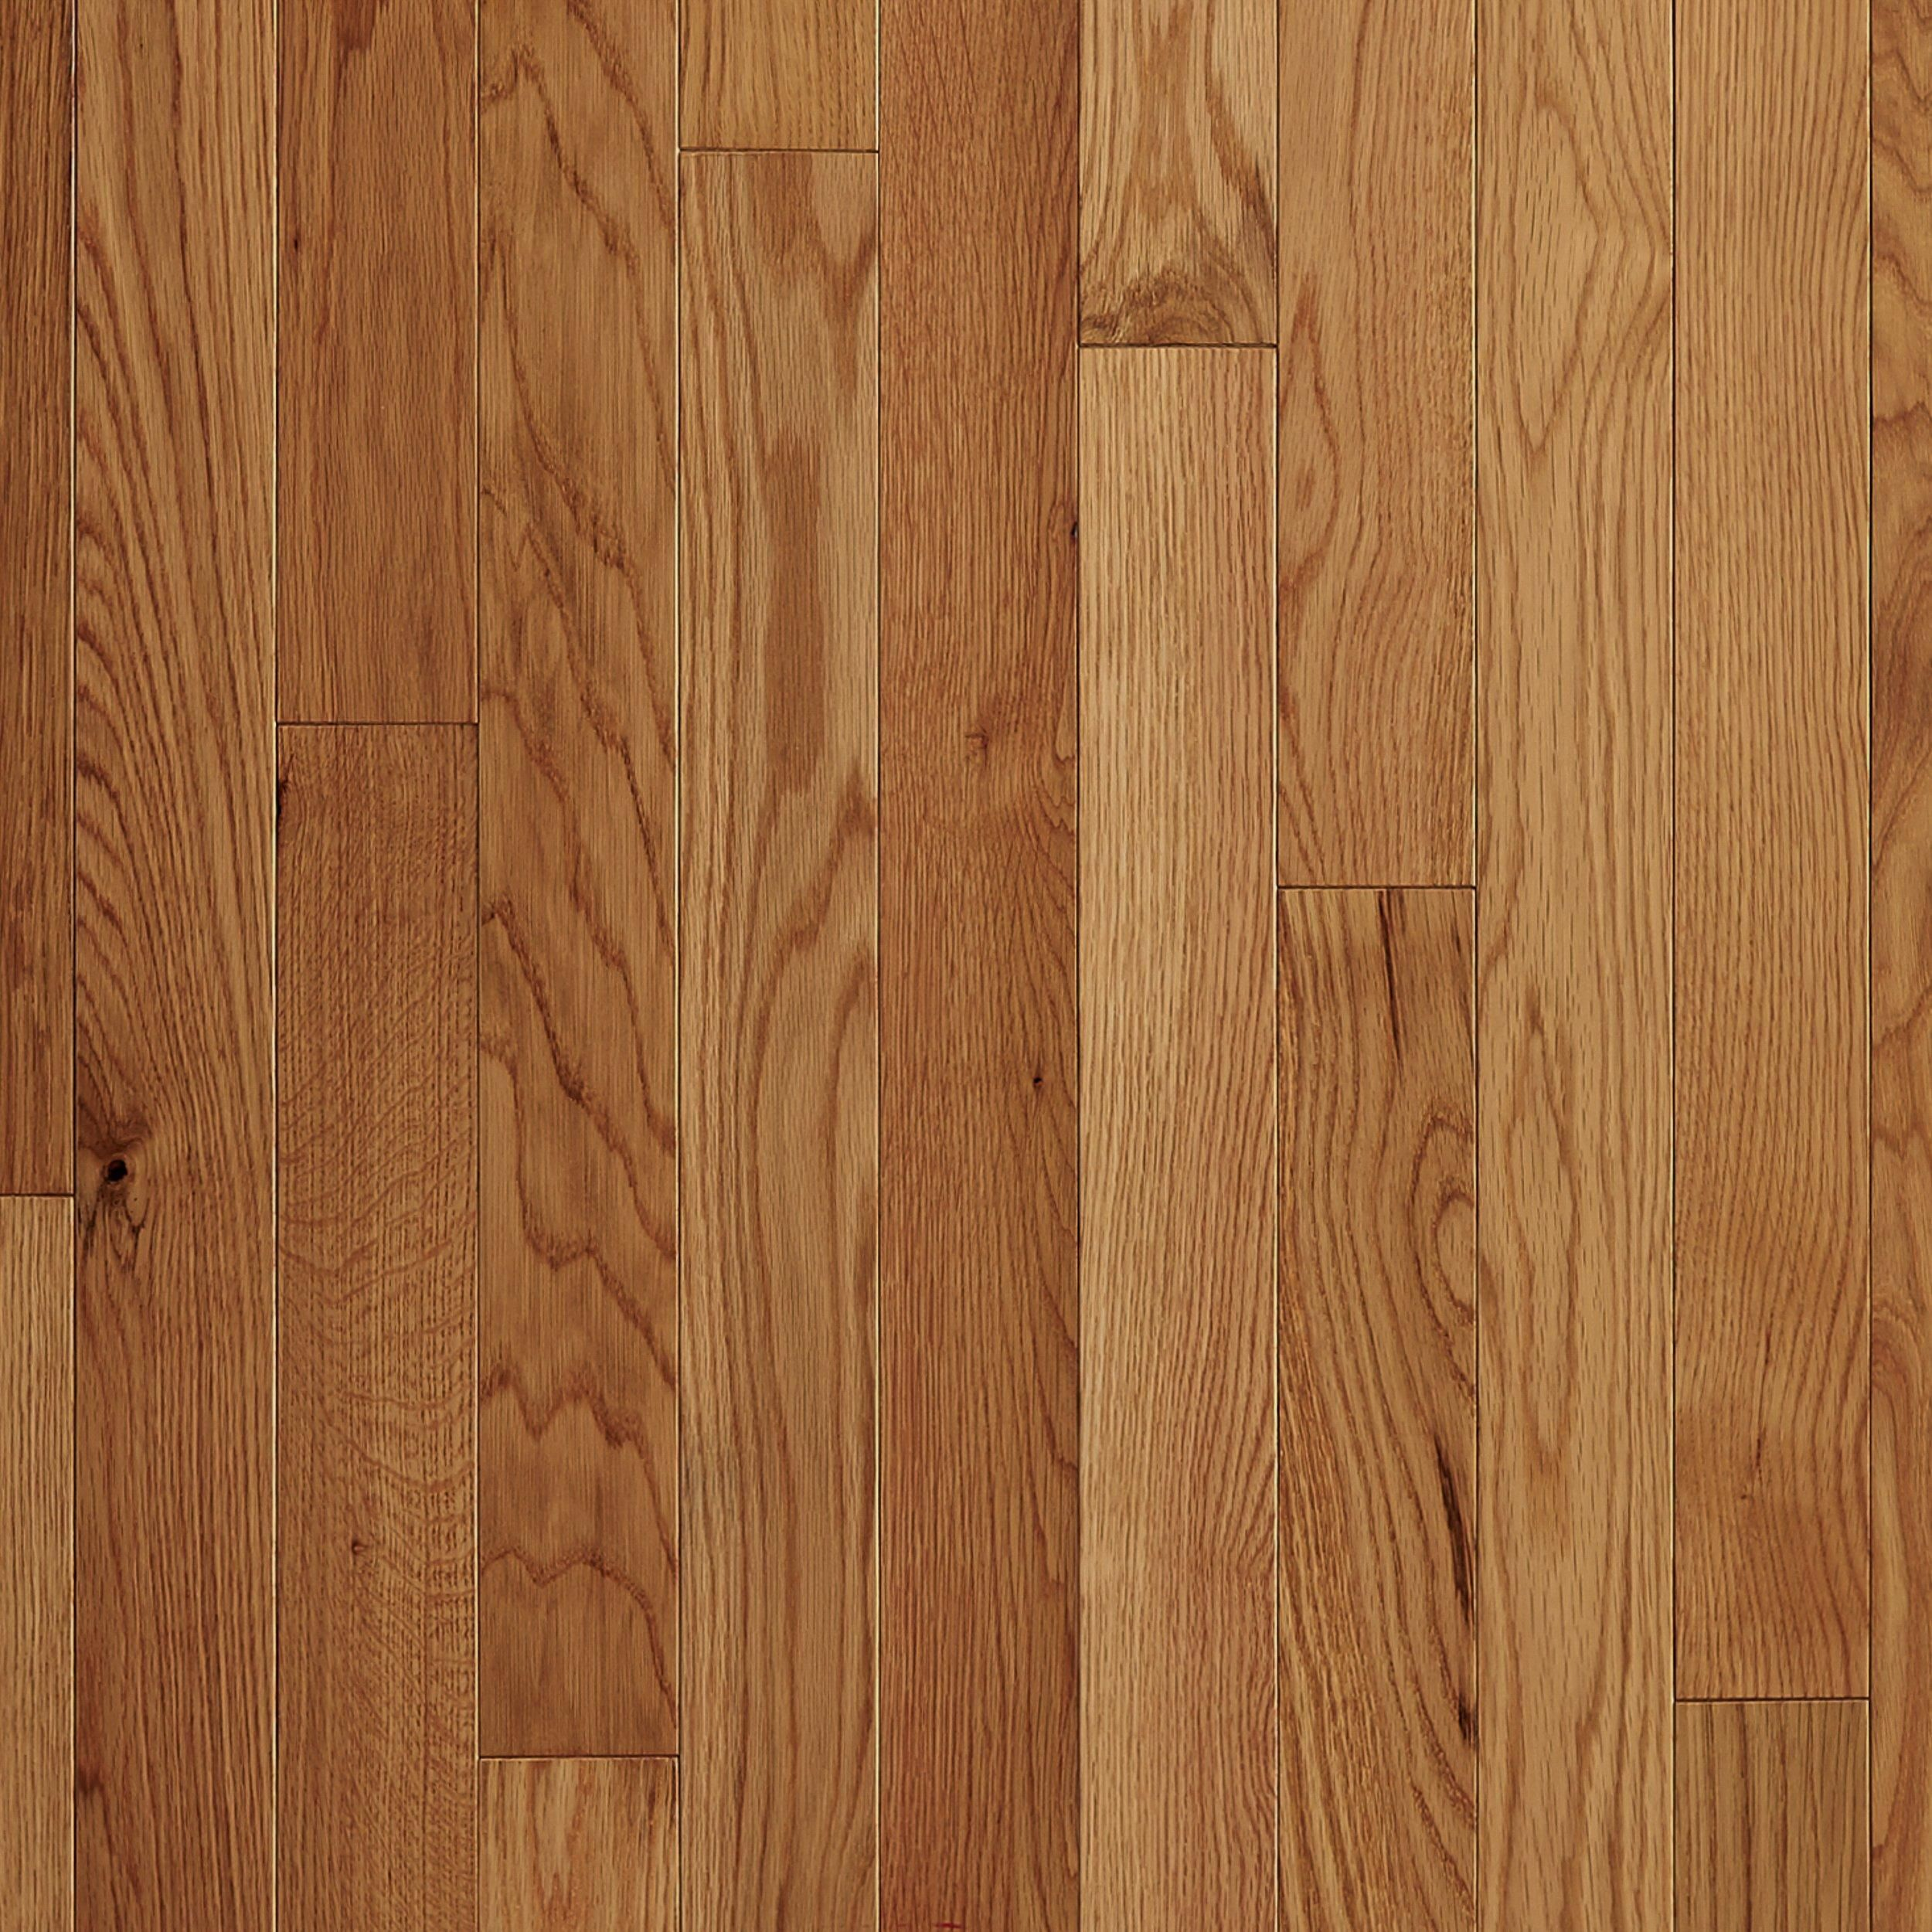 Natural White Oak Smooth Solid Hardwood Solid Hardwood Floors Prefinished Hardwood Prefinished Hardwood Floors